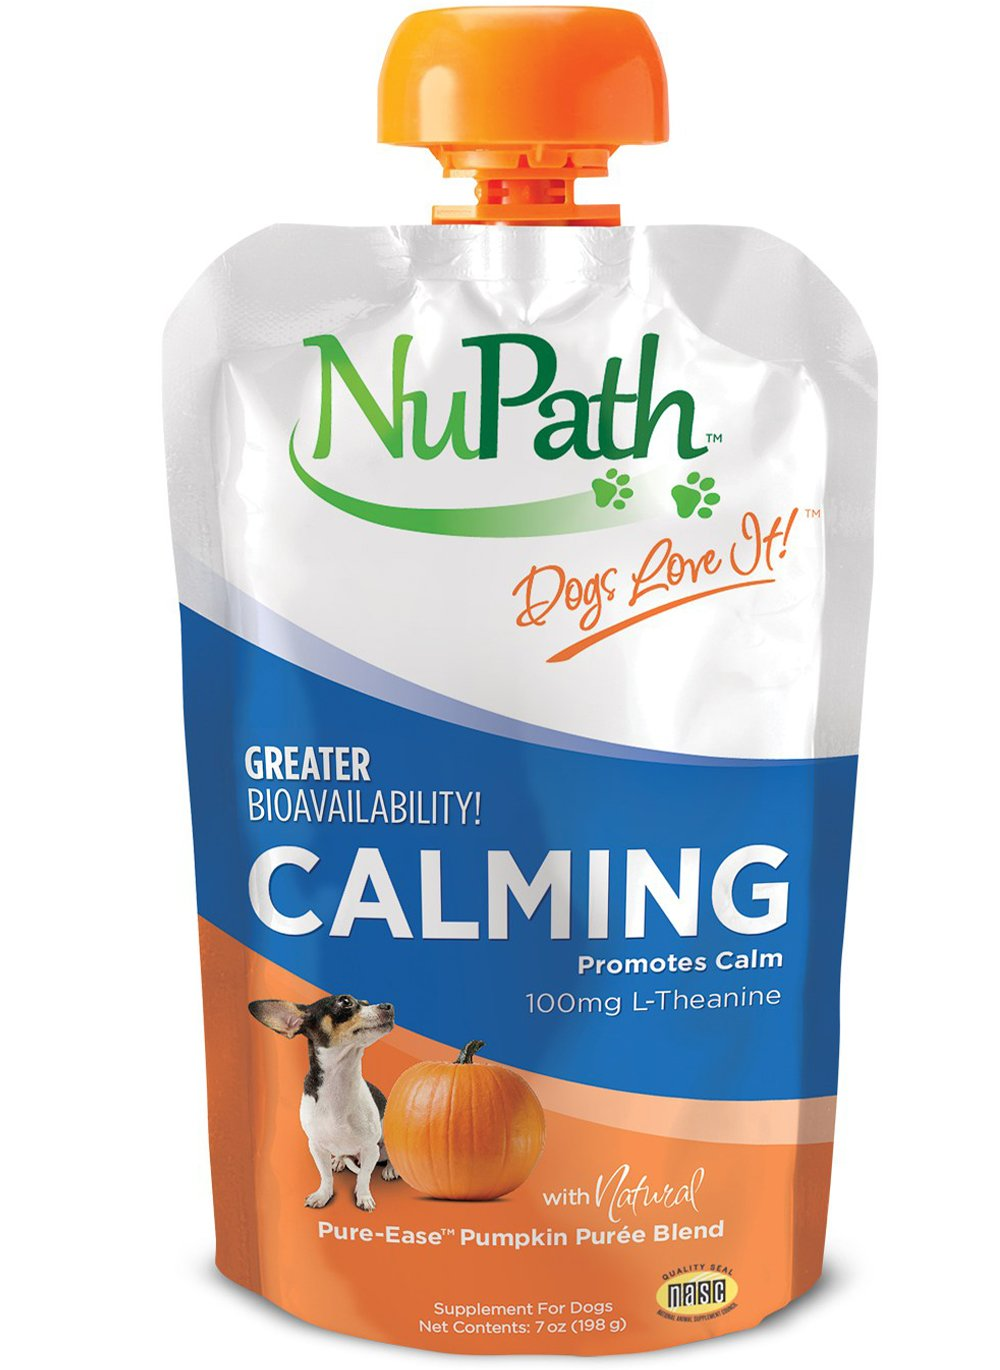 NuPath Pumpkin Supplement Squeeze Pouches For Dogs: Rich In Fiber - Comes In Easy-To-Squeeze Pouch